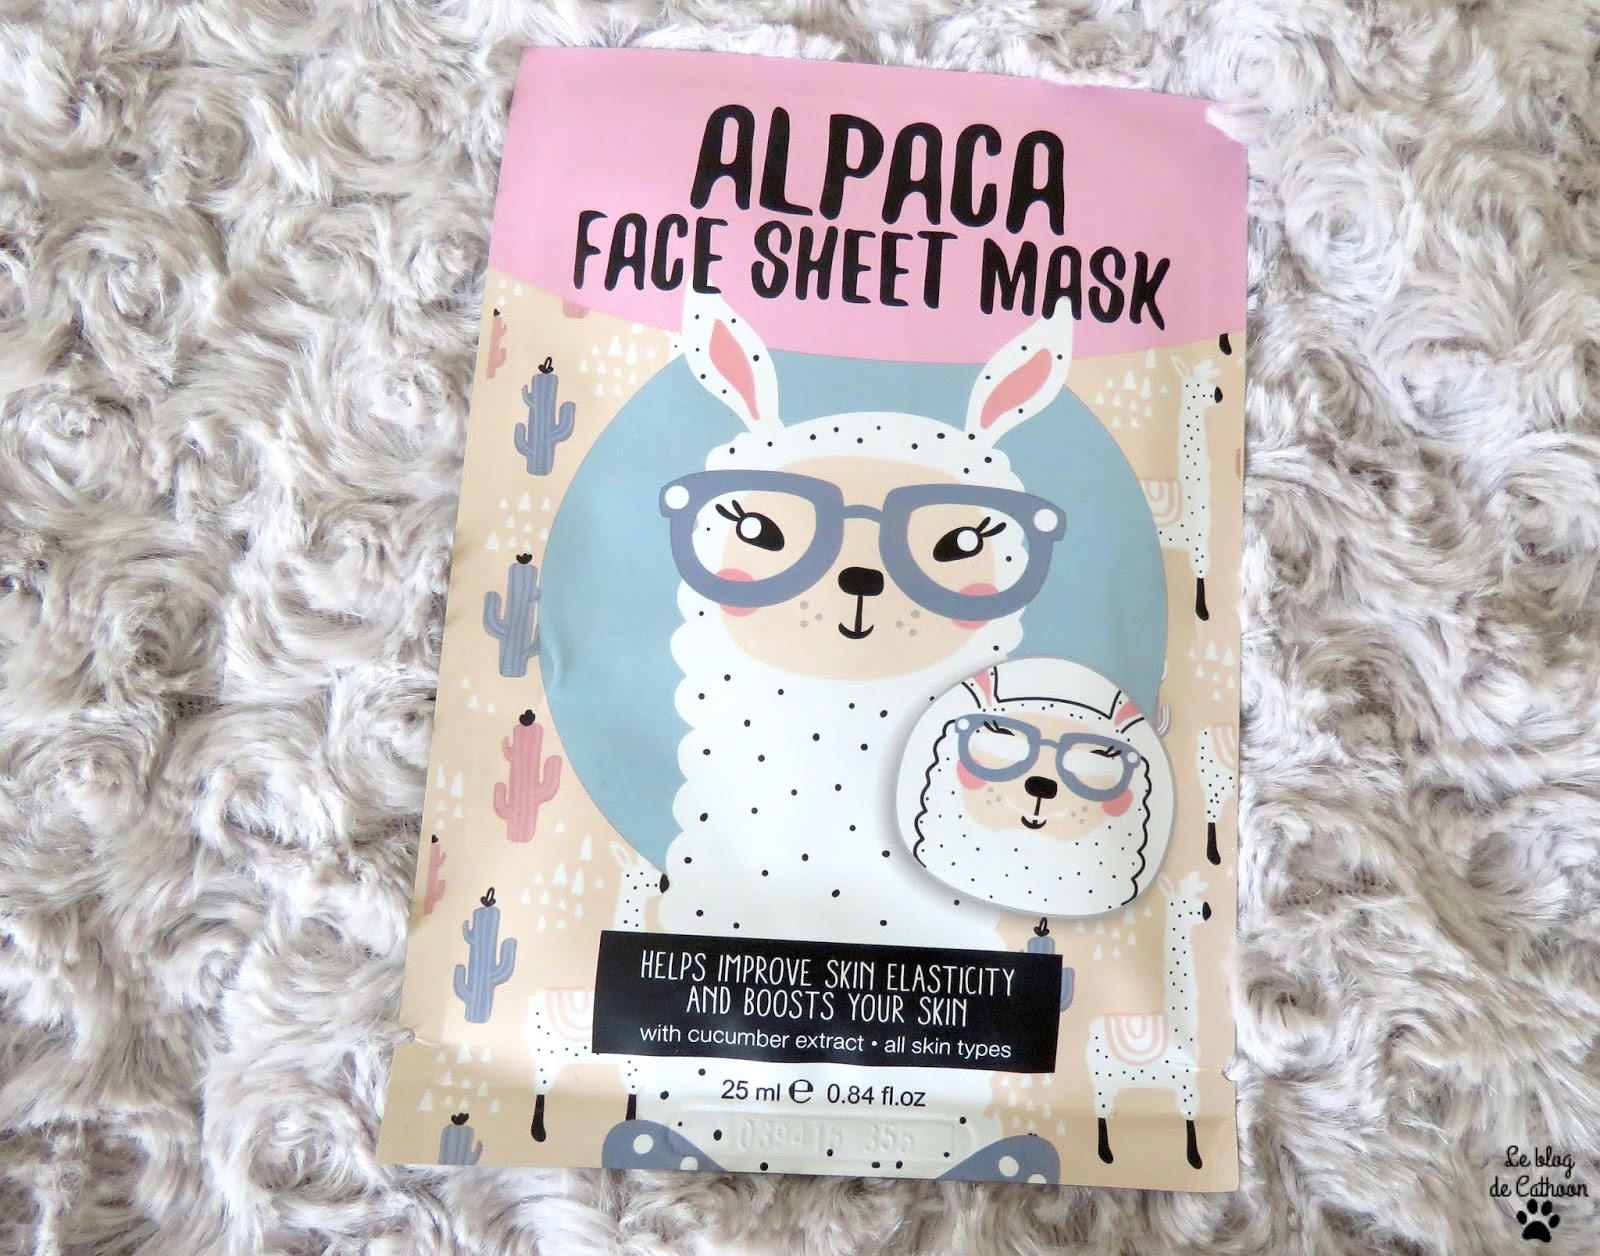 Alpaga Face Sheet Mask - Masque Tissu - Action